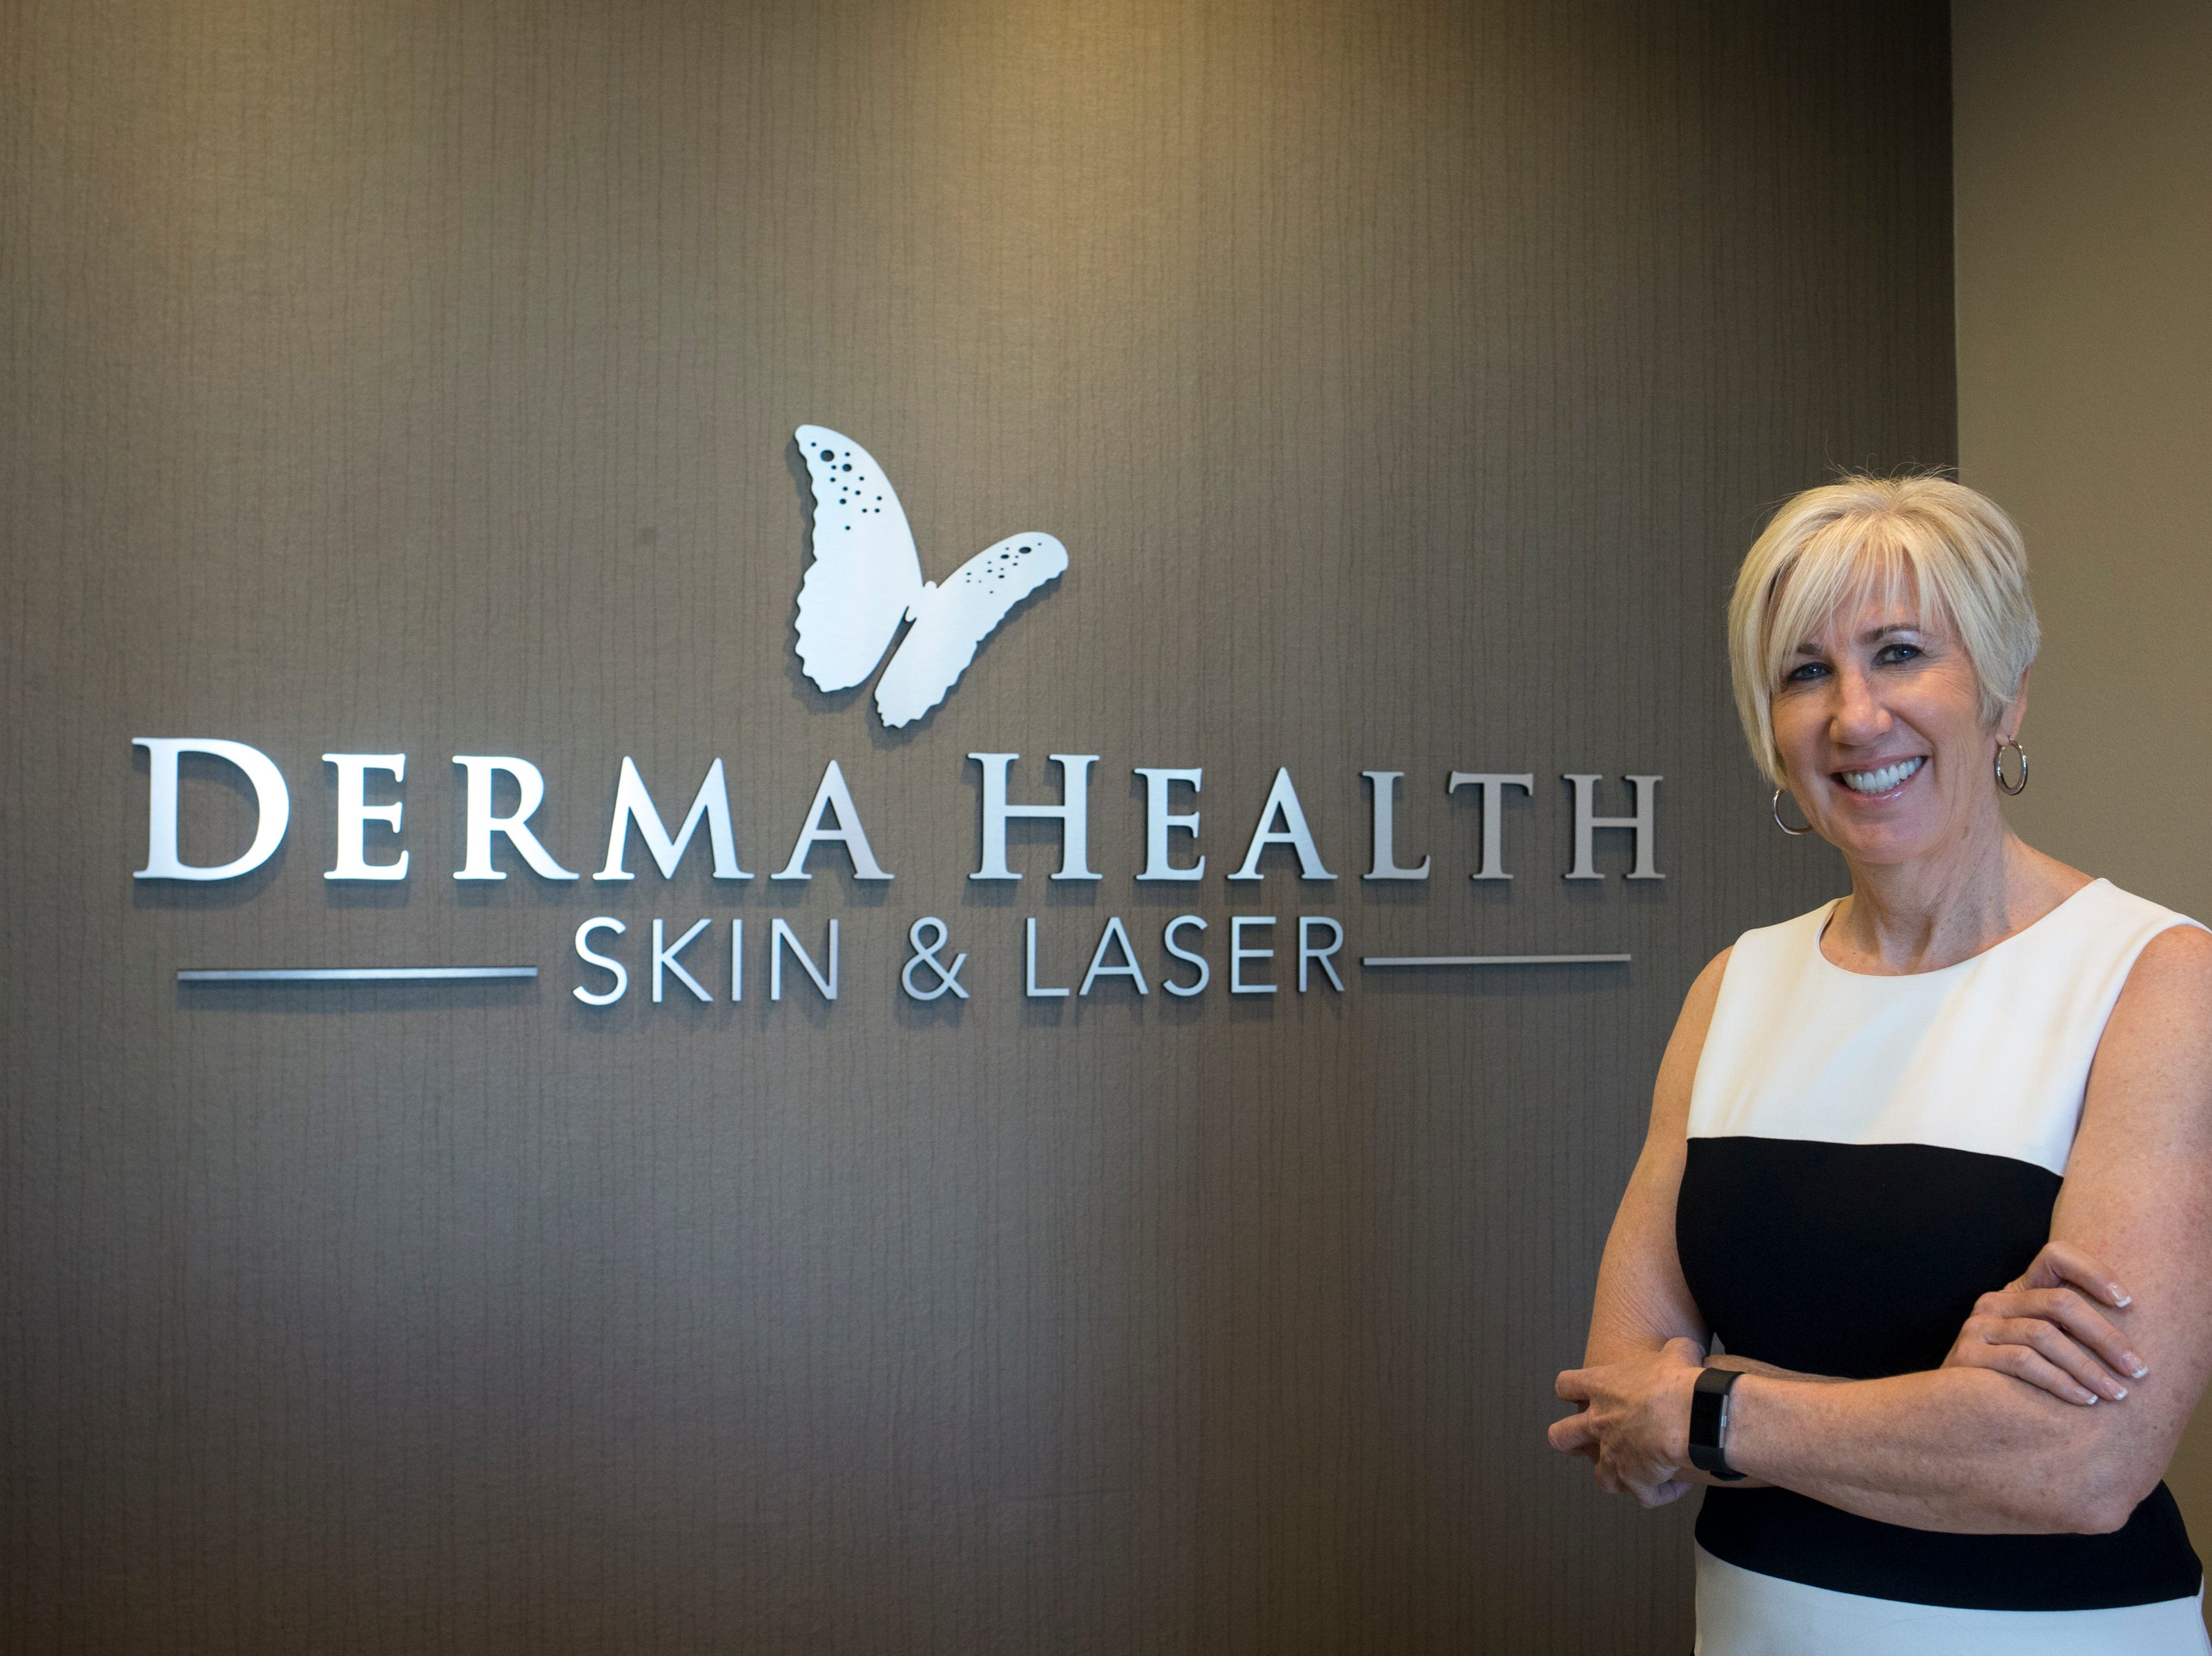 Trish Gulbranson started Derma Health Skin & Laser in 2005. She decided to go into the med-spa industry with a desire to help women and men continue to feel young and good about themselves at any age.